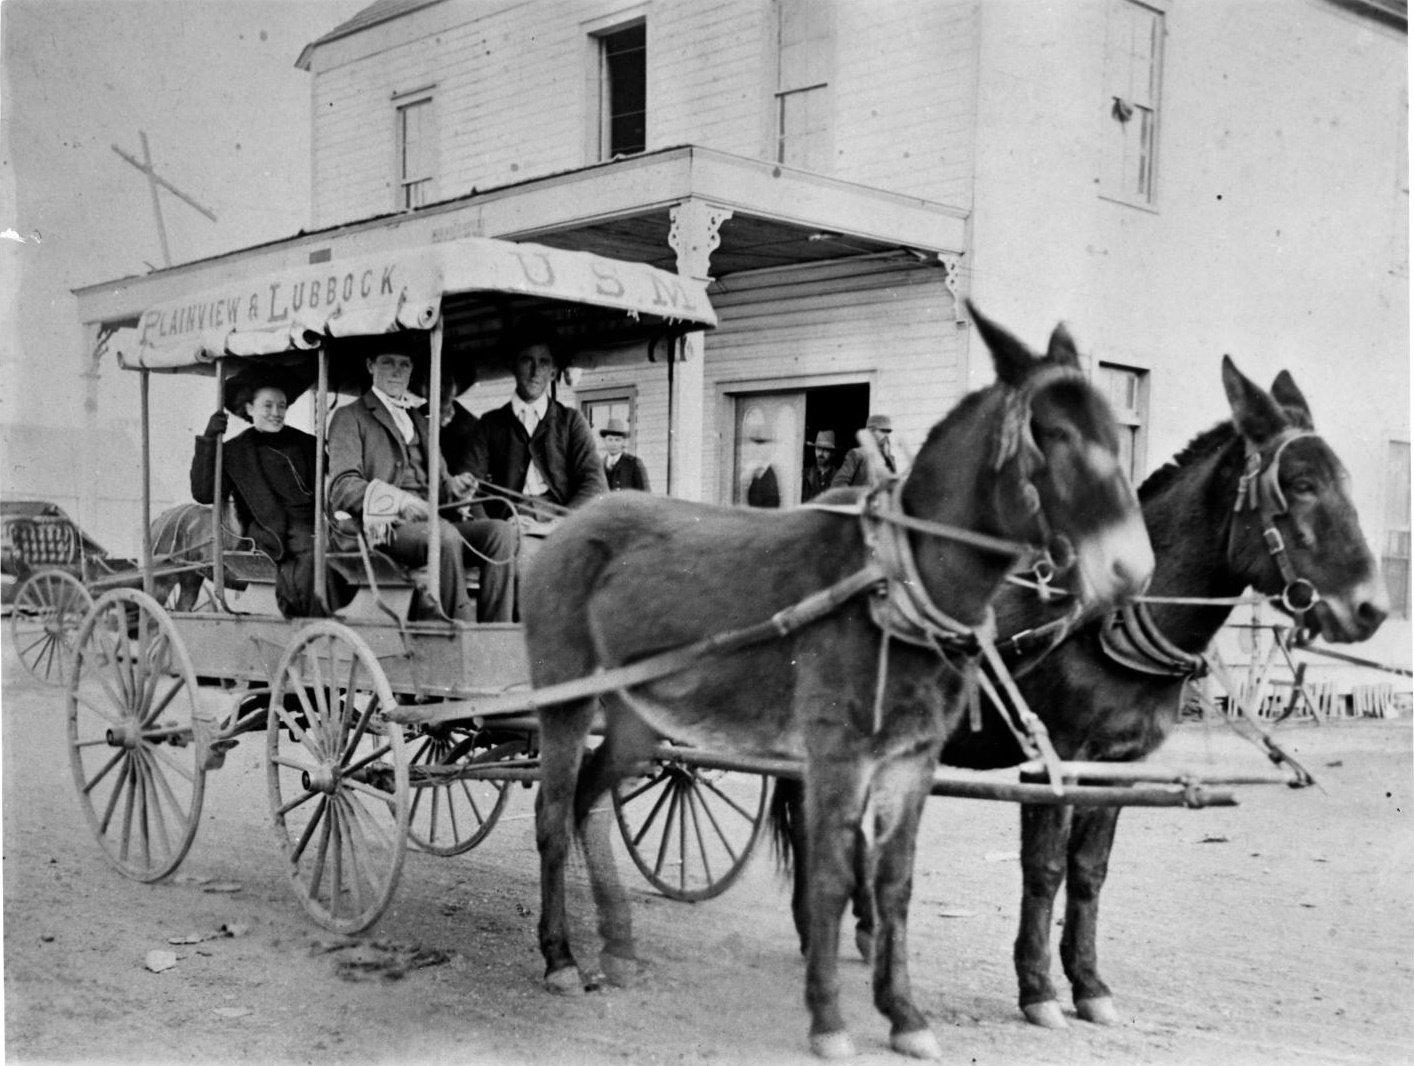 Plainview & Lubbock Stagecoach in 1907